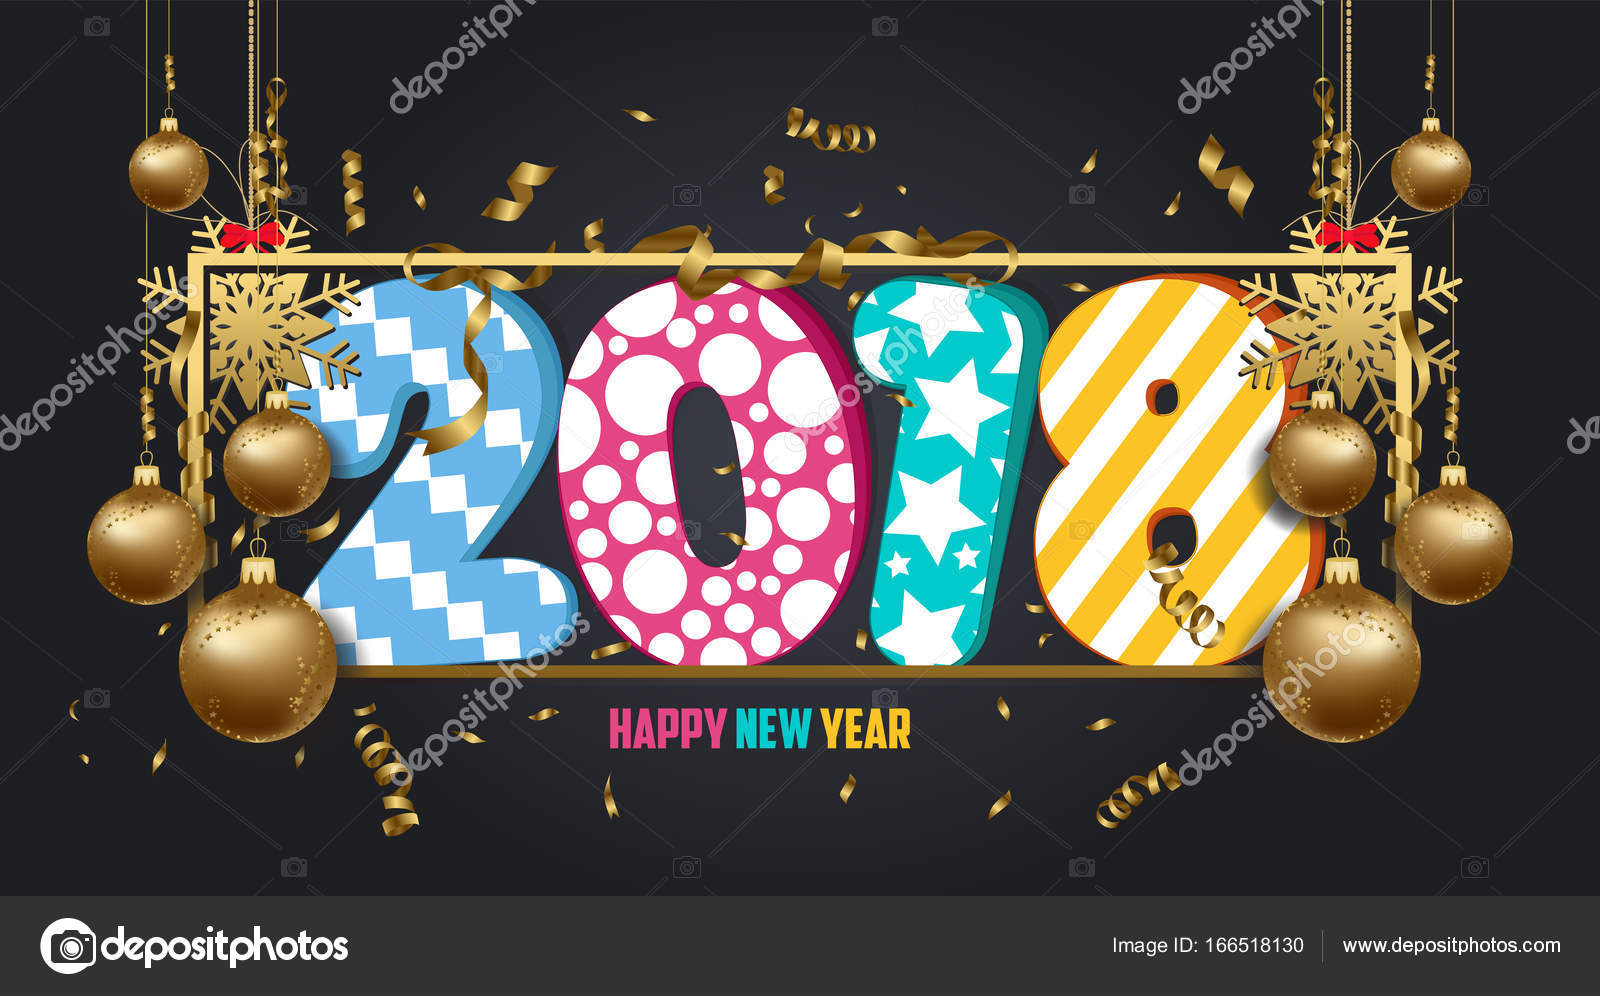 vector illustration of happy new year 2018 wallpaper gold balls and black colorful stock vector